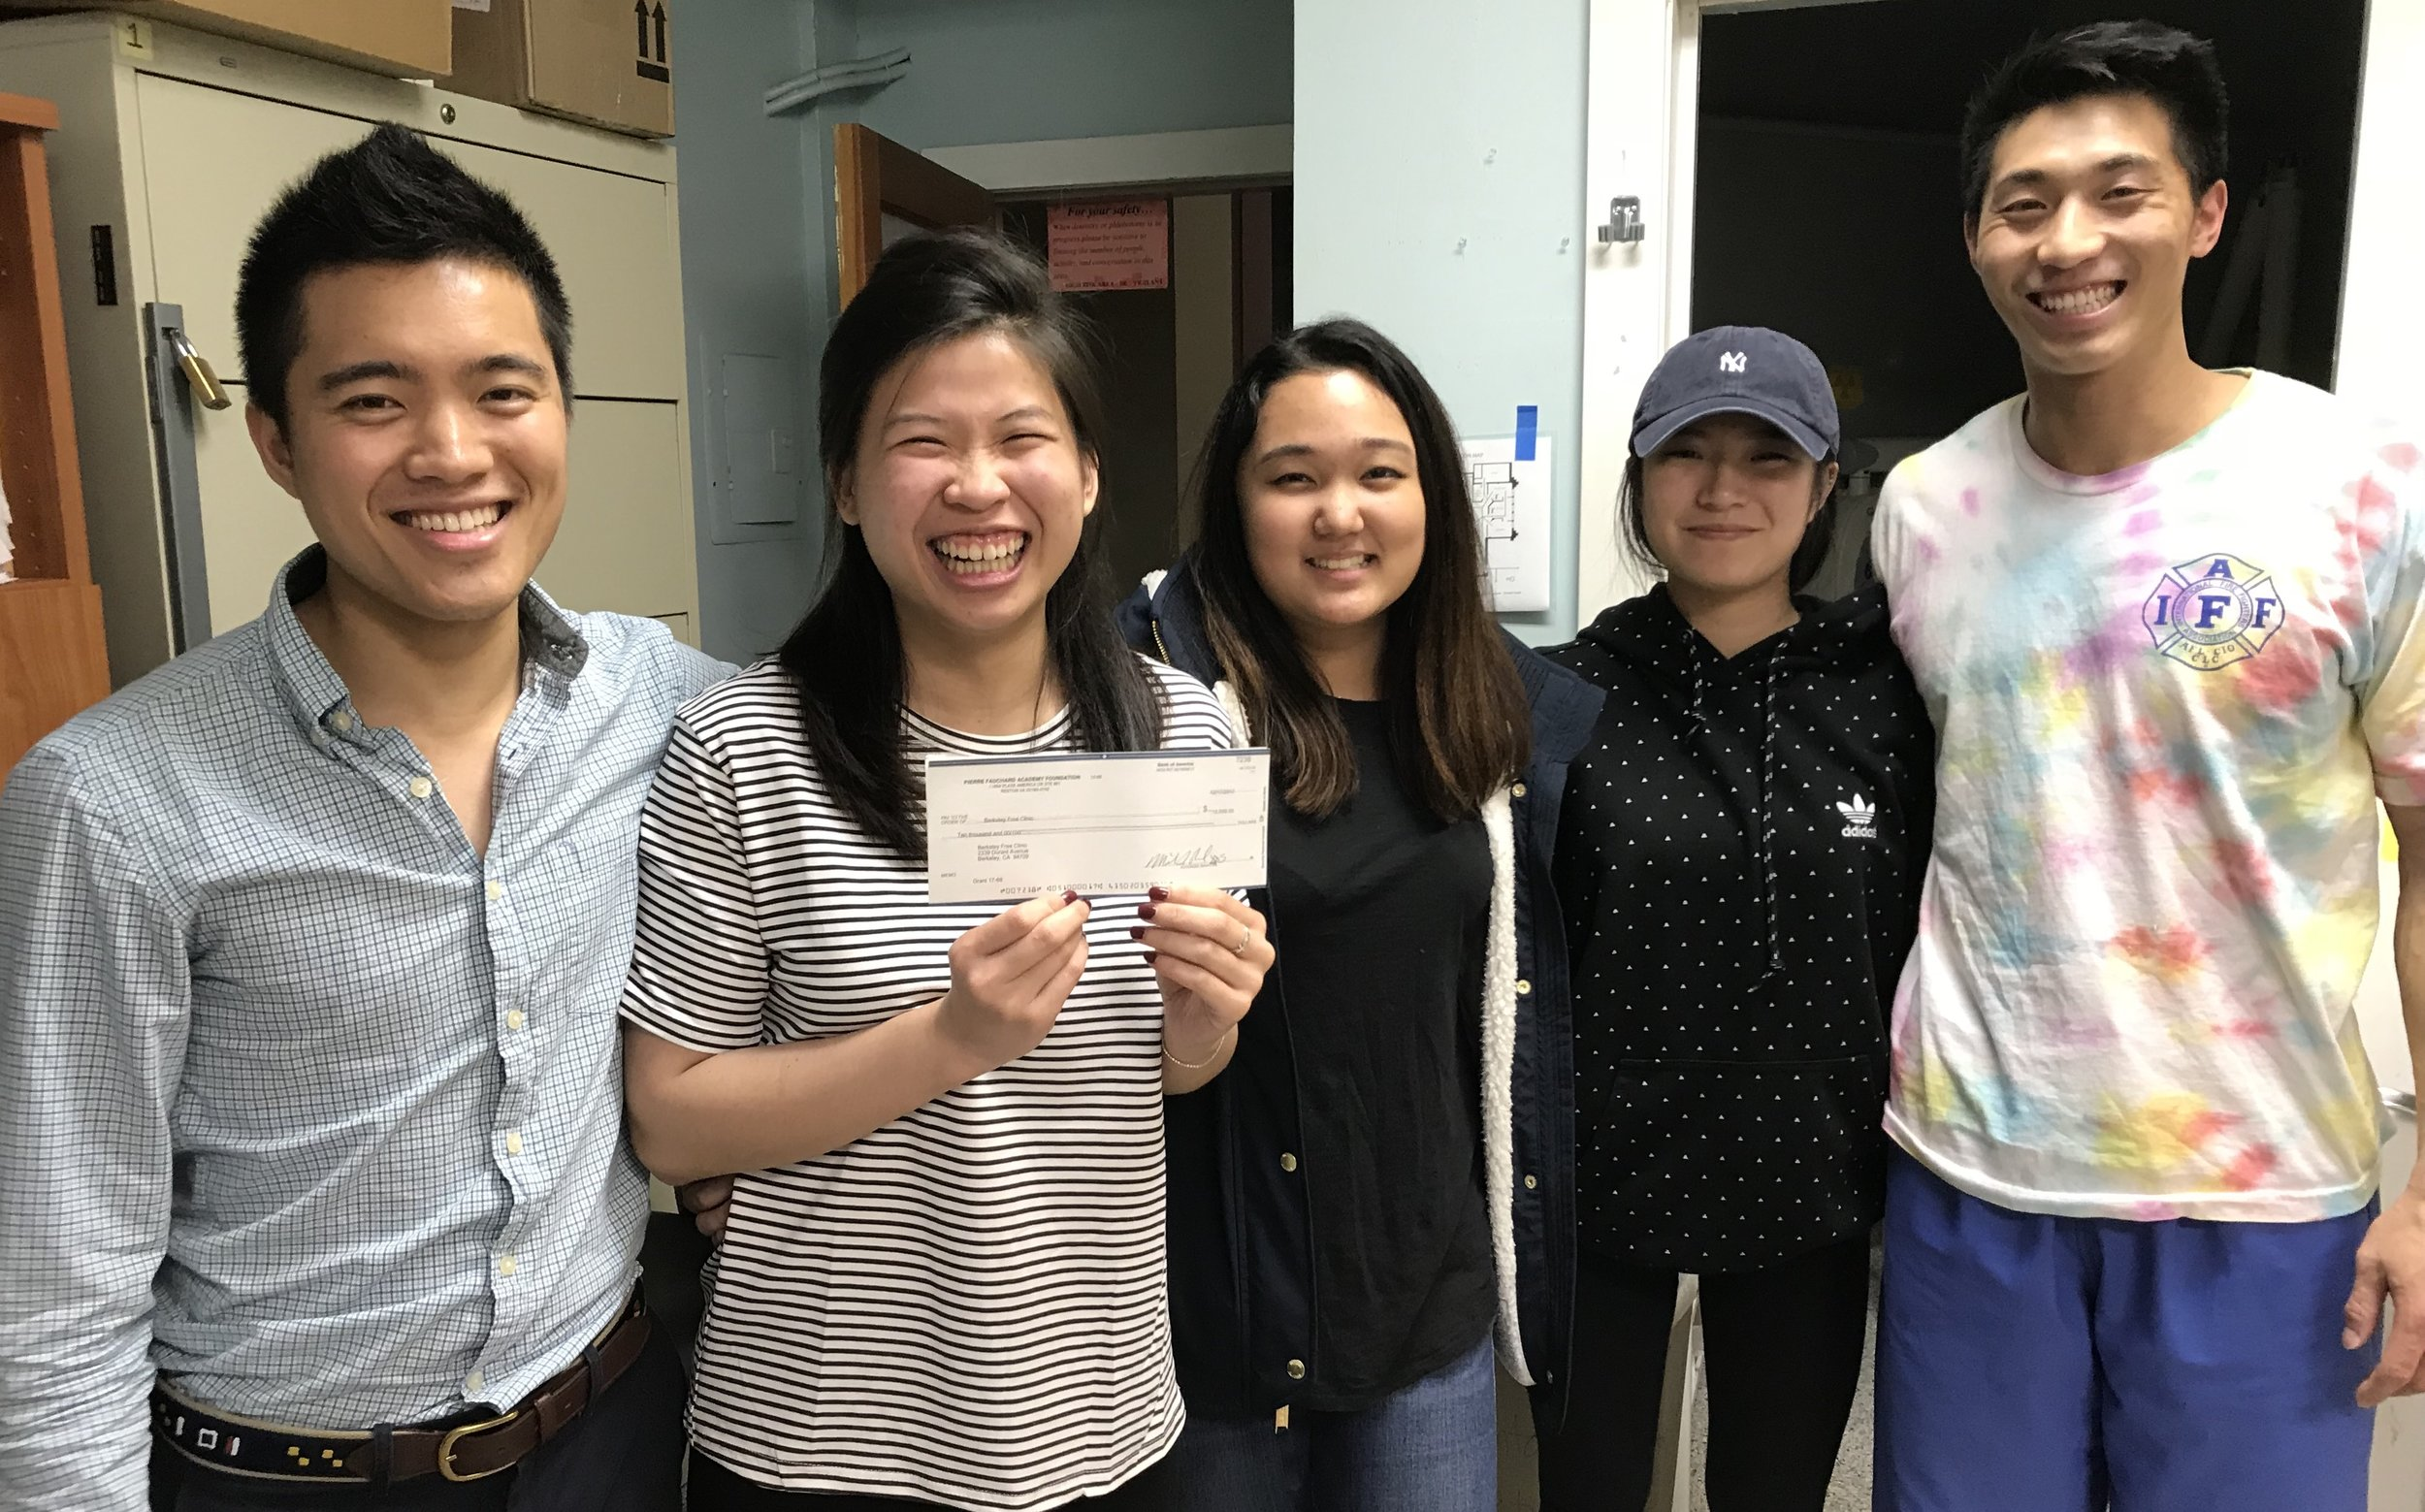 Dental Volunteers, Kevin, Michelle, Jessica, yoona, and rohen are all smiles with Oral Health Foundation donation